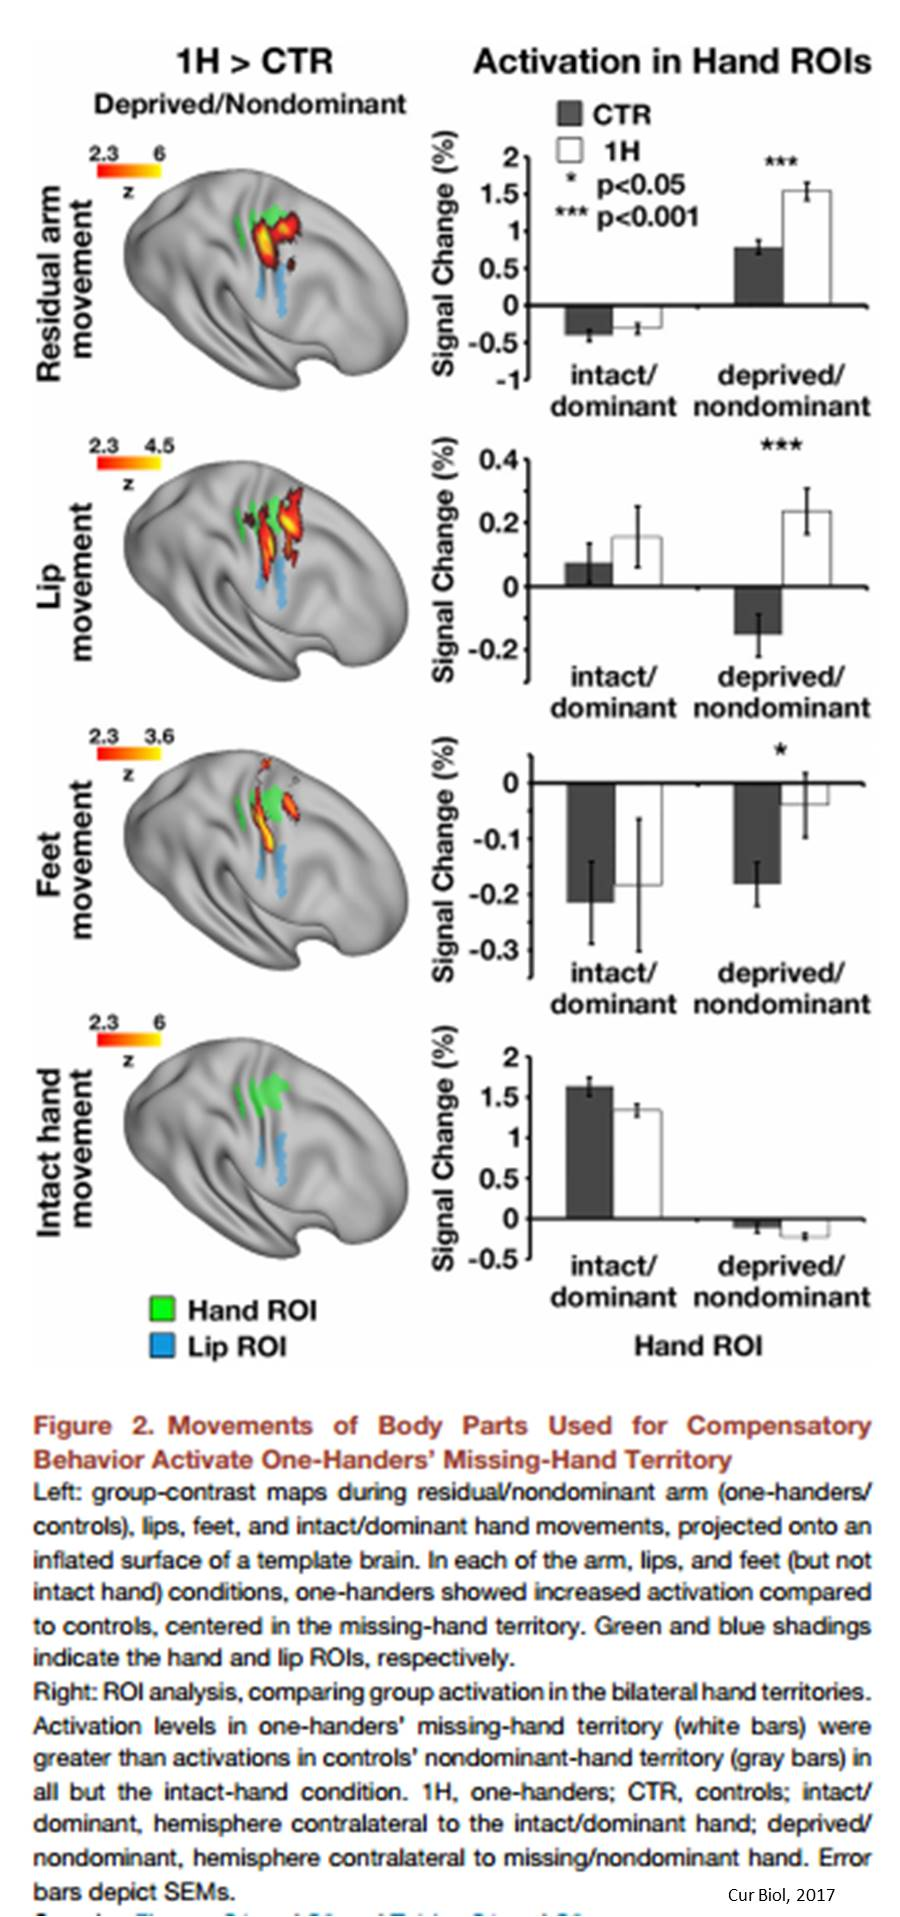 Brains of one-handed people suggest new organization theory